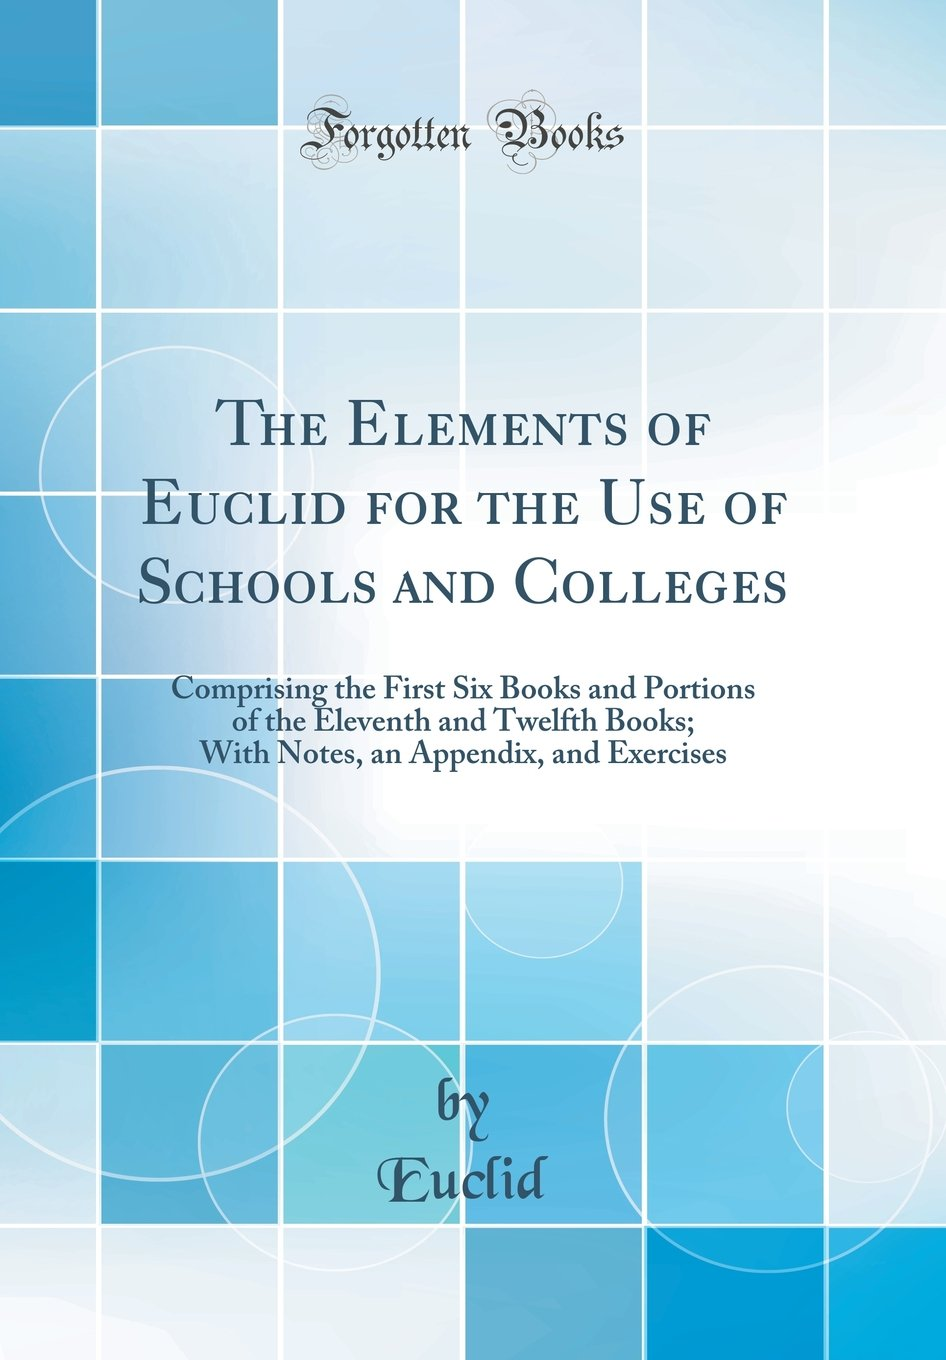 The Elements of Euclid for the Use of Schools and Colleges: Comprising the First Six Books and Portions of the Eleventh and Twelfth Books; With Notes, an Appendix, and Exercises (Classic Reprint) PDF